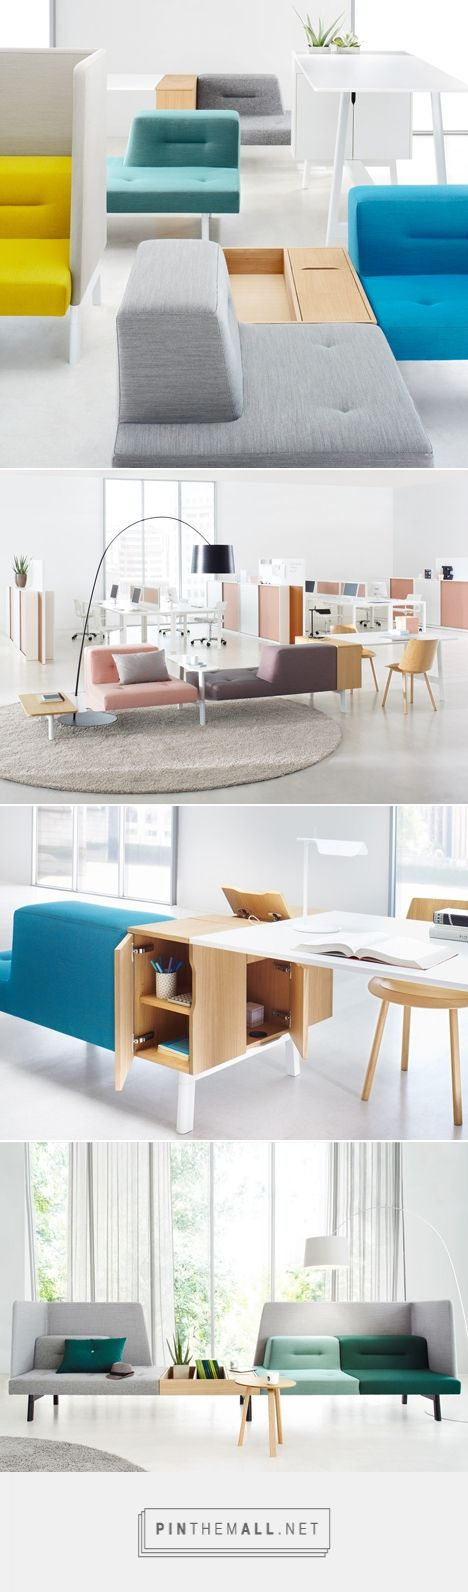 Docks Furniture System For Ophelis By Till Grosch And Bjorn Meier Meie